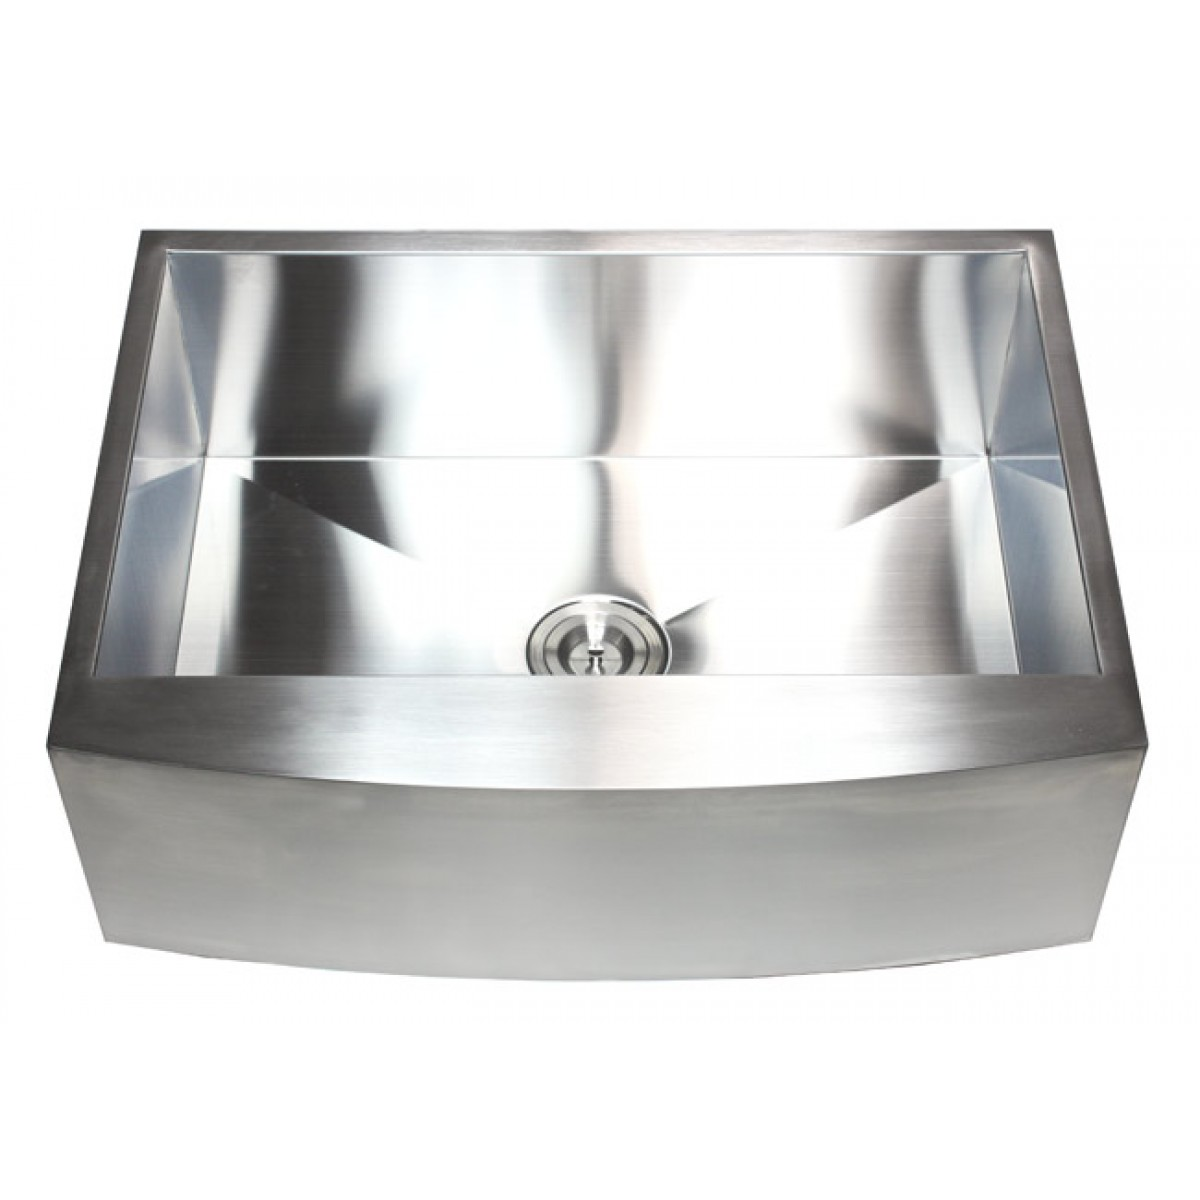 30 inch stainless steel single bowl curved front farm for Designer kitchen sinks stainless steel